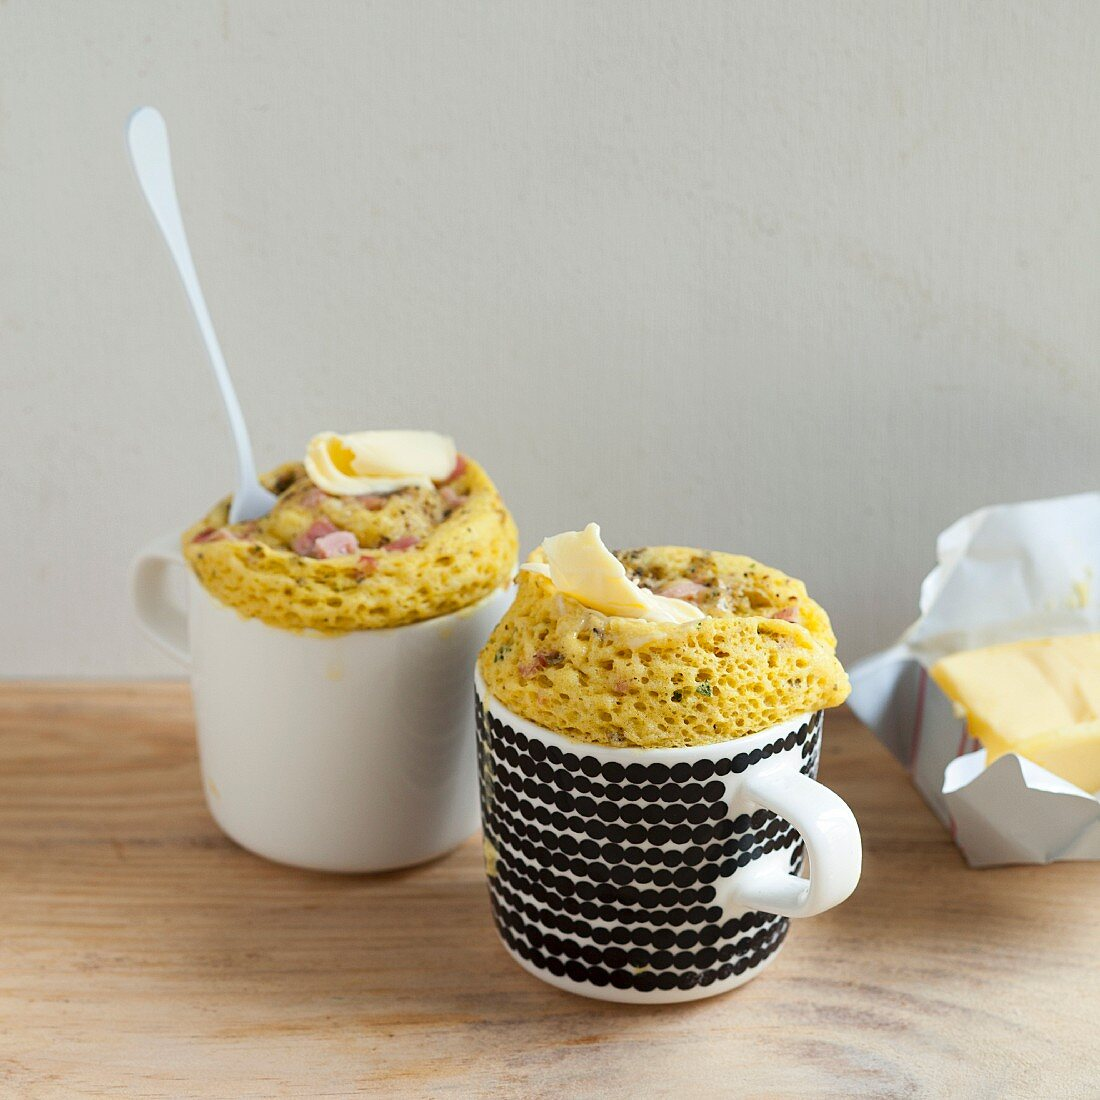 Savoury mug cakes with diced ham and a dab of butter on the top